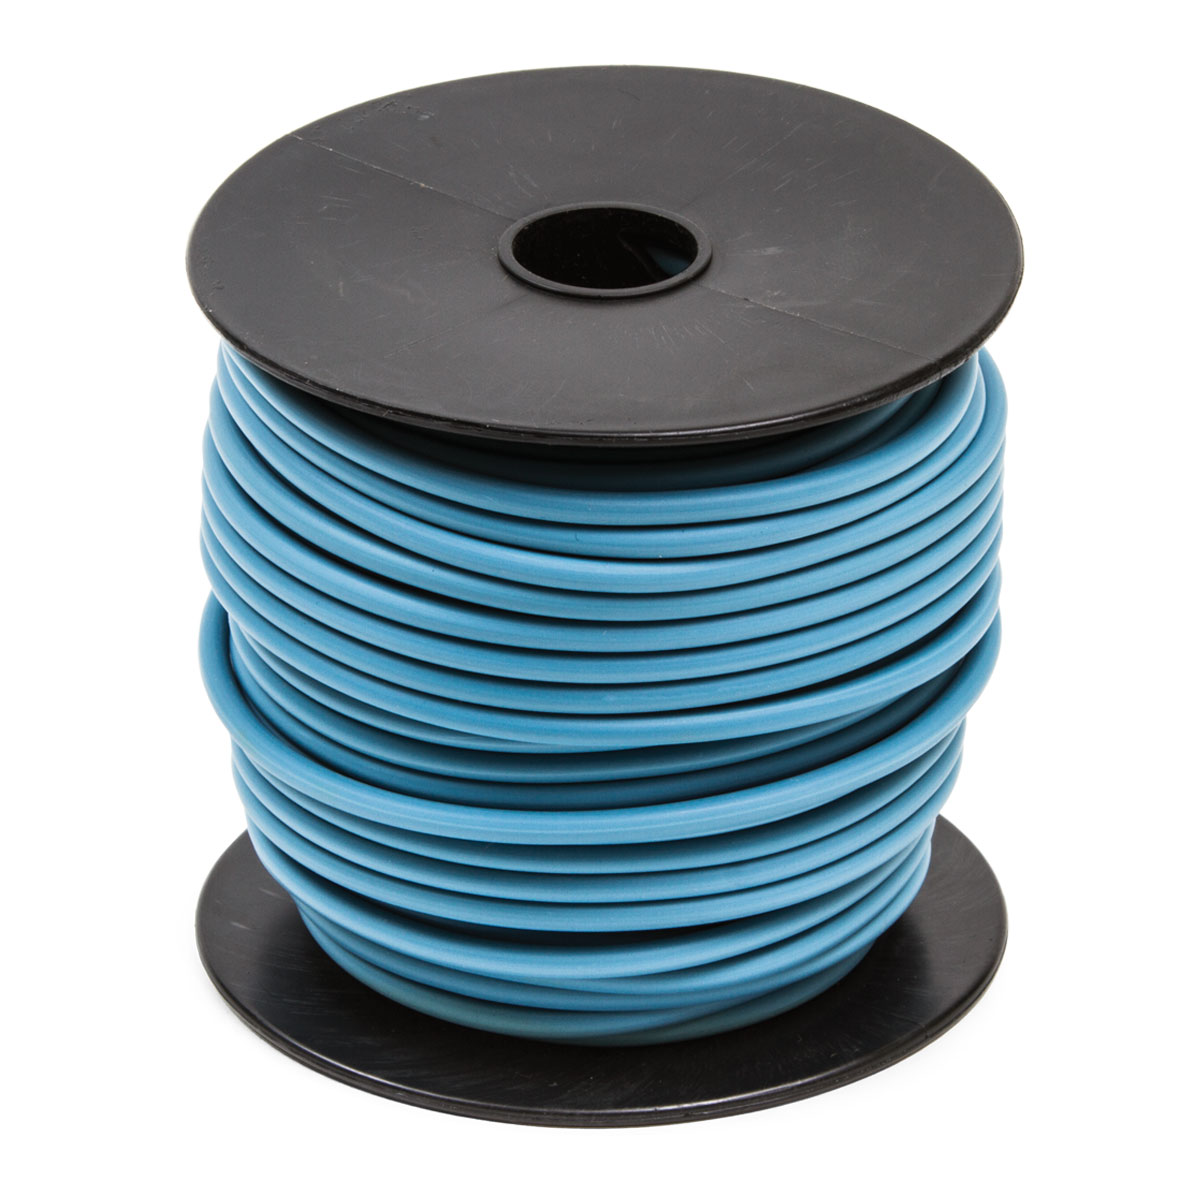 14 Gauge Cross-Link Primary Wire Light Blue - Kimball Midwest